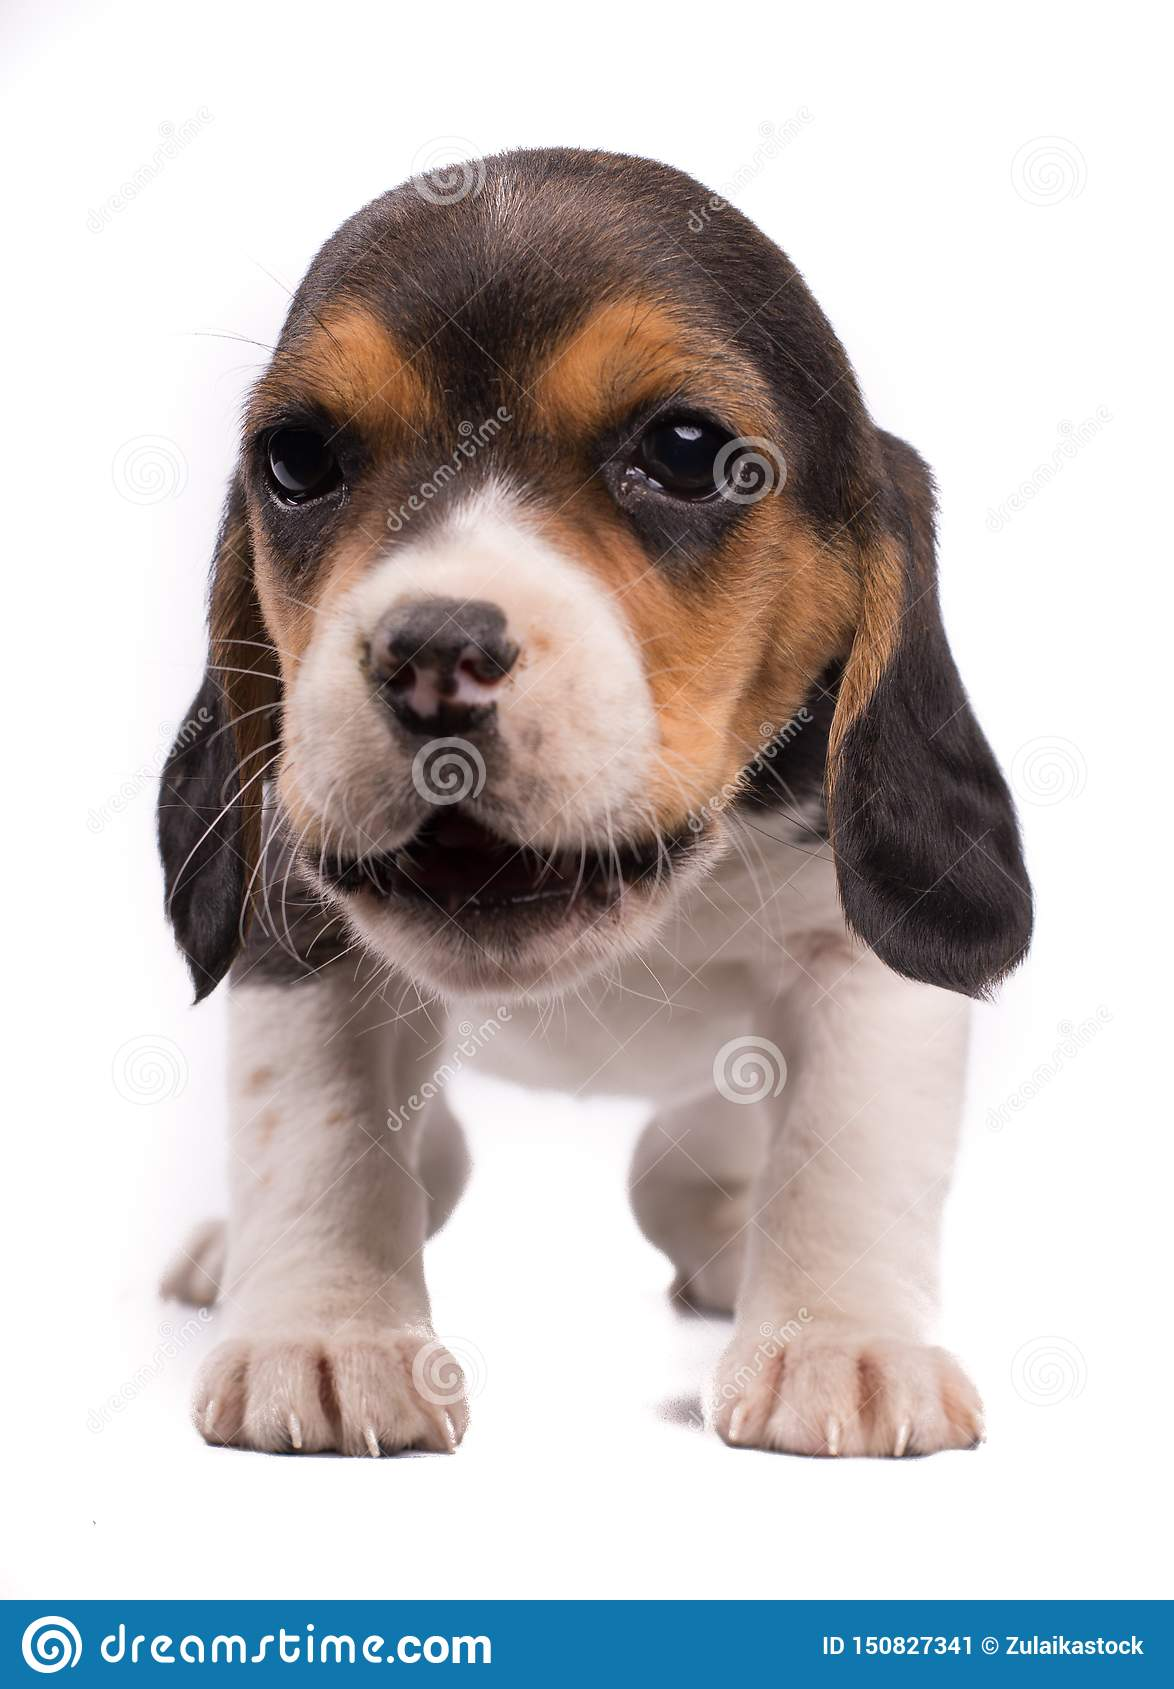 Funny photo of a dog, puppy beagle with the mouth opened eating something